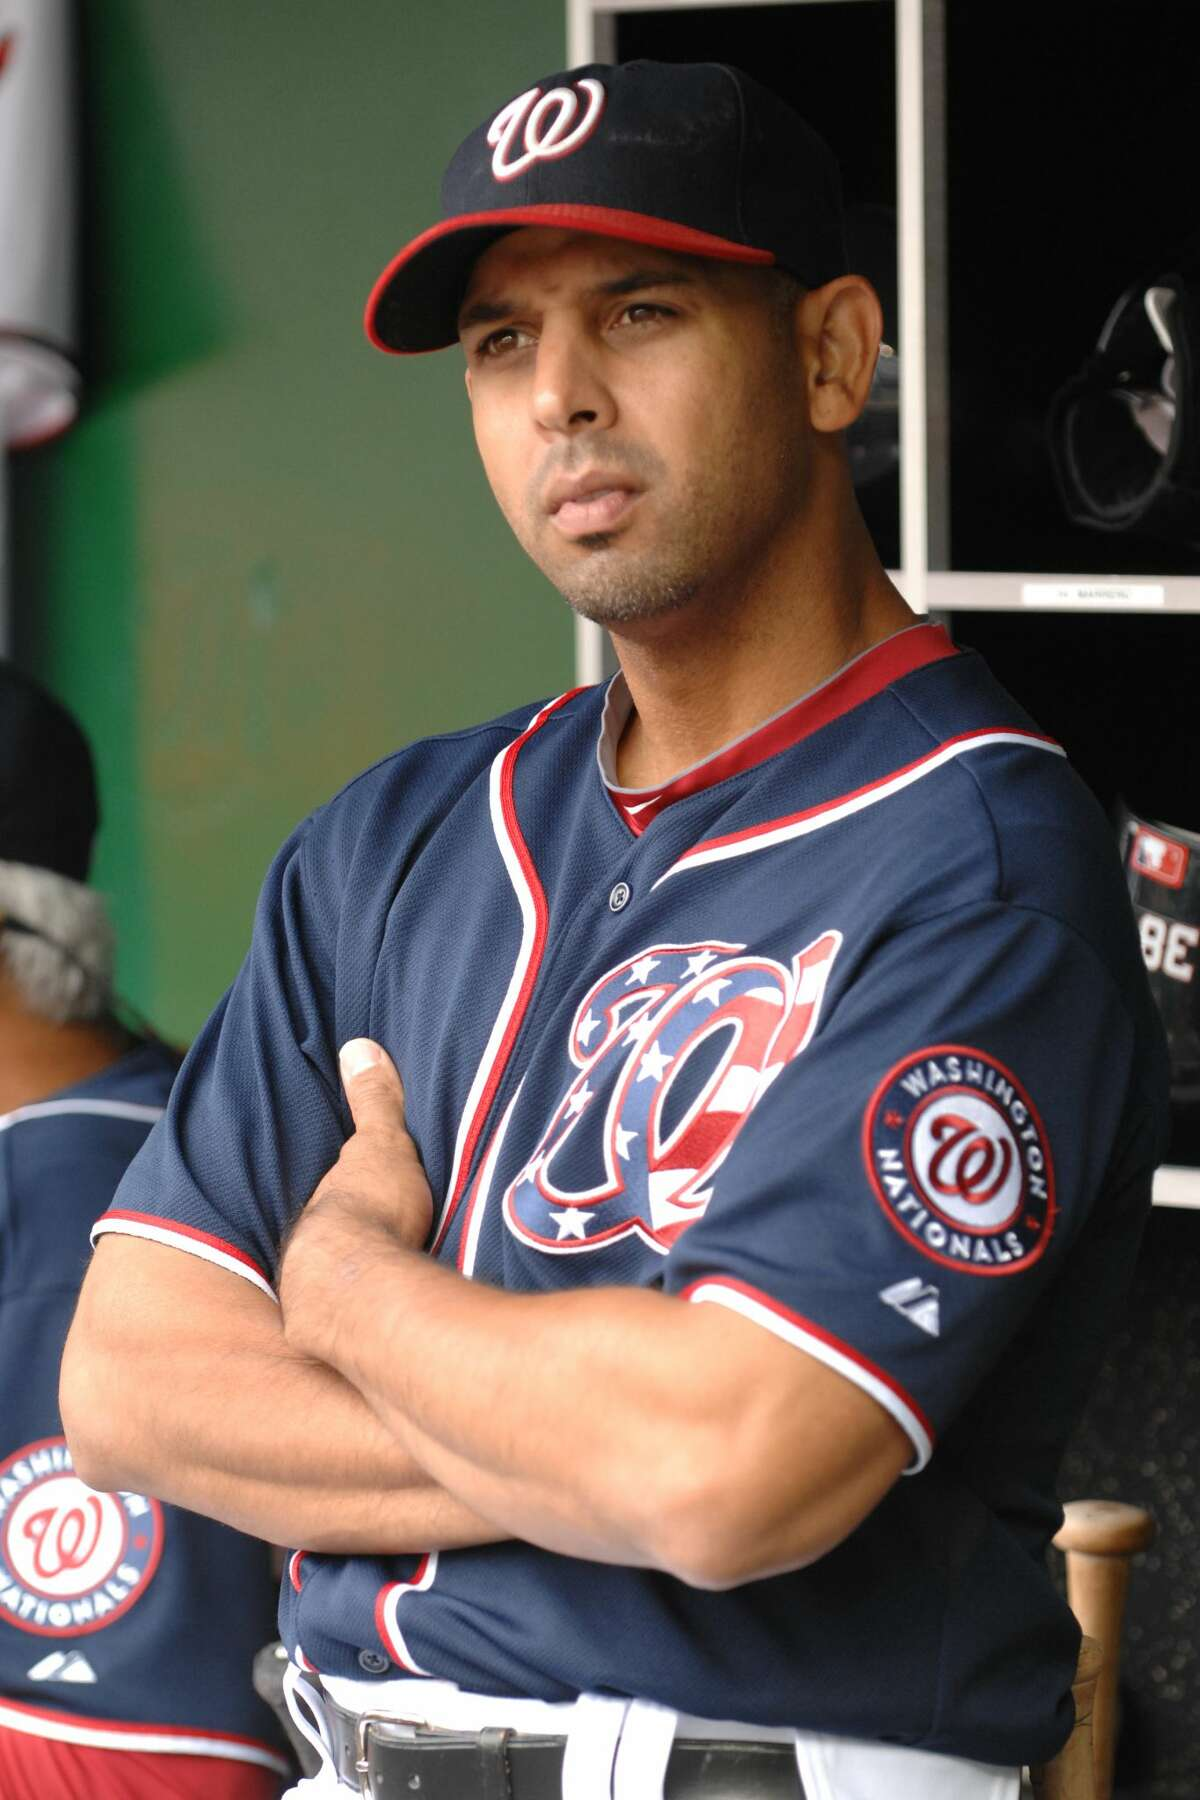 WASHINGTON, DC - SEPTEMBER 5: Alex Cora #13 of the Washington Nationals looks on from the dugout before a baseball game against the Los Angeles Dodgers at National Park on September 5, 2011 in Washington DC. The Nationals won 7-2. (Photo by Mitchell Layton/Getty Images)